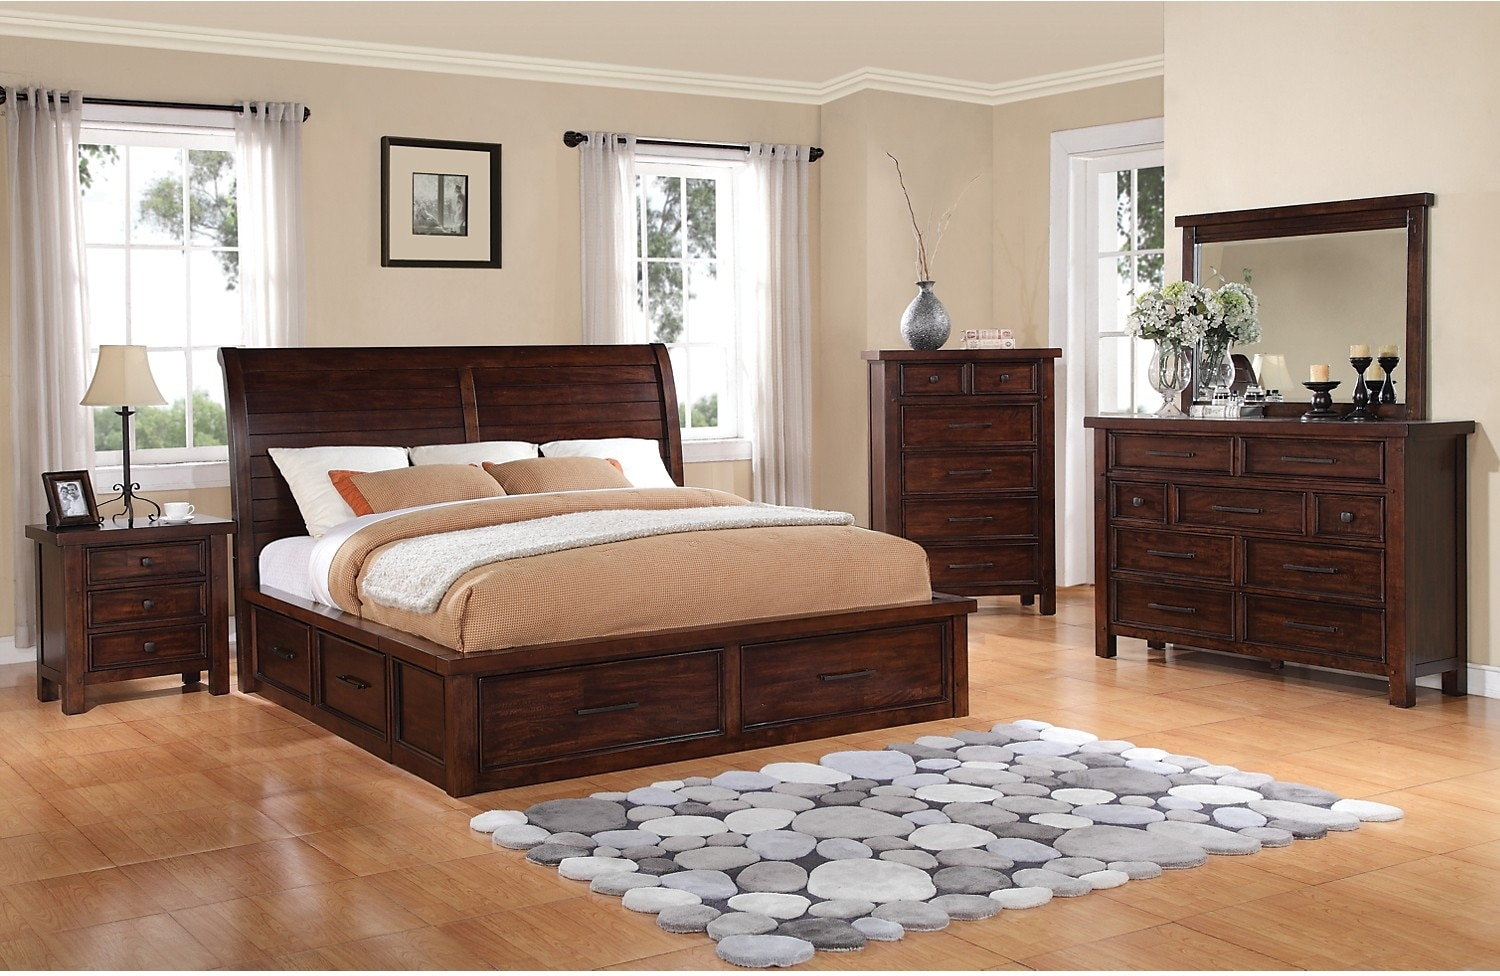 Bedroom Furniture - Sonoma 8-Piece King Storage Bedroom Set - Dark Brown